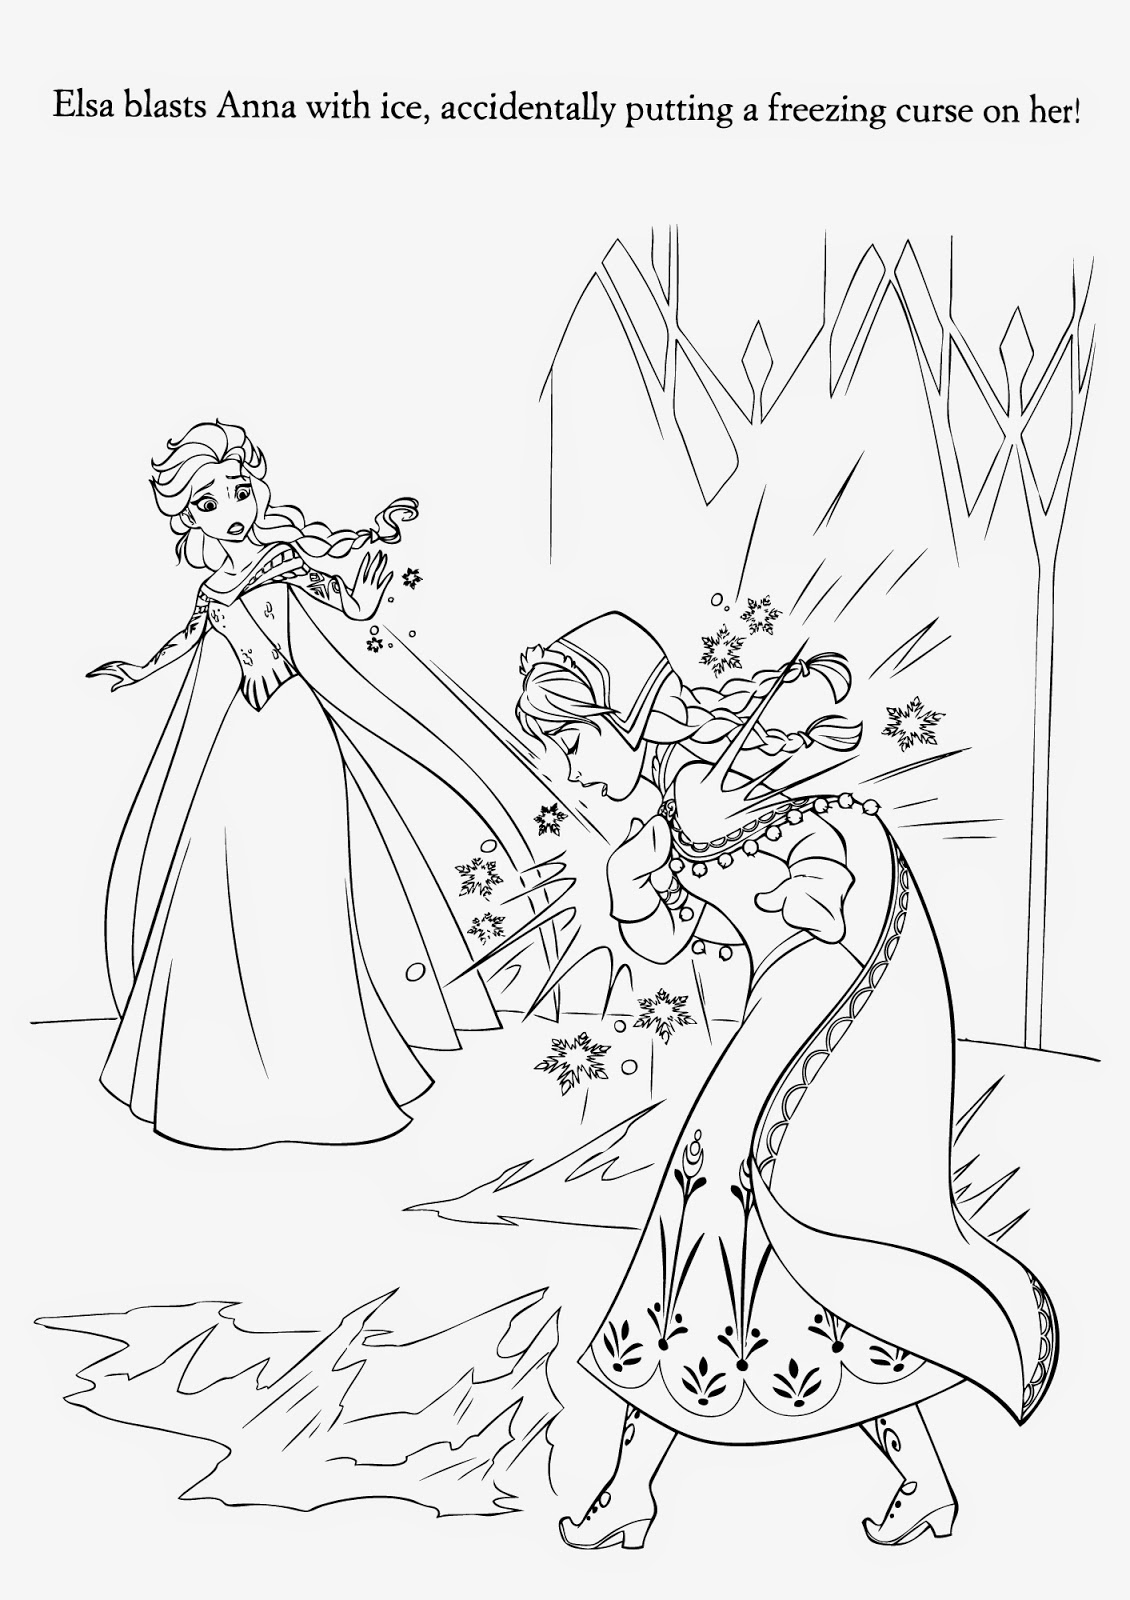 anna and elsa frozen coloring pages disney frozen printable coloring pages 2 disney coloring elsa pages coloring frozen and anna